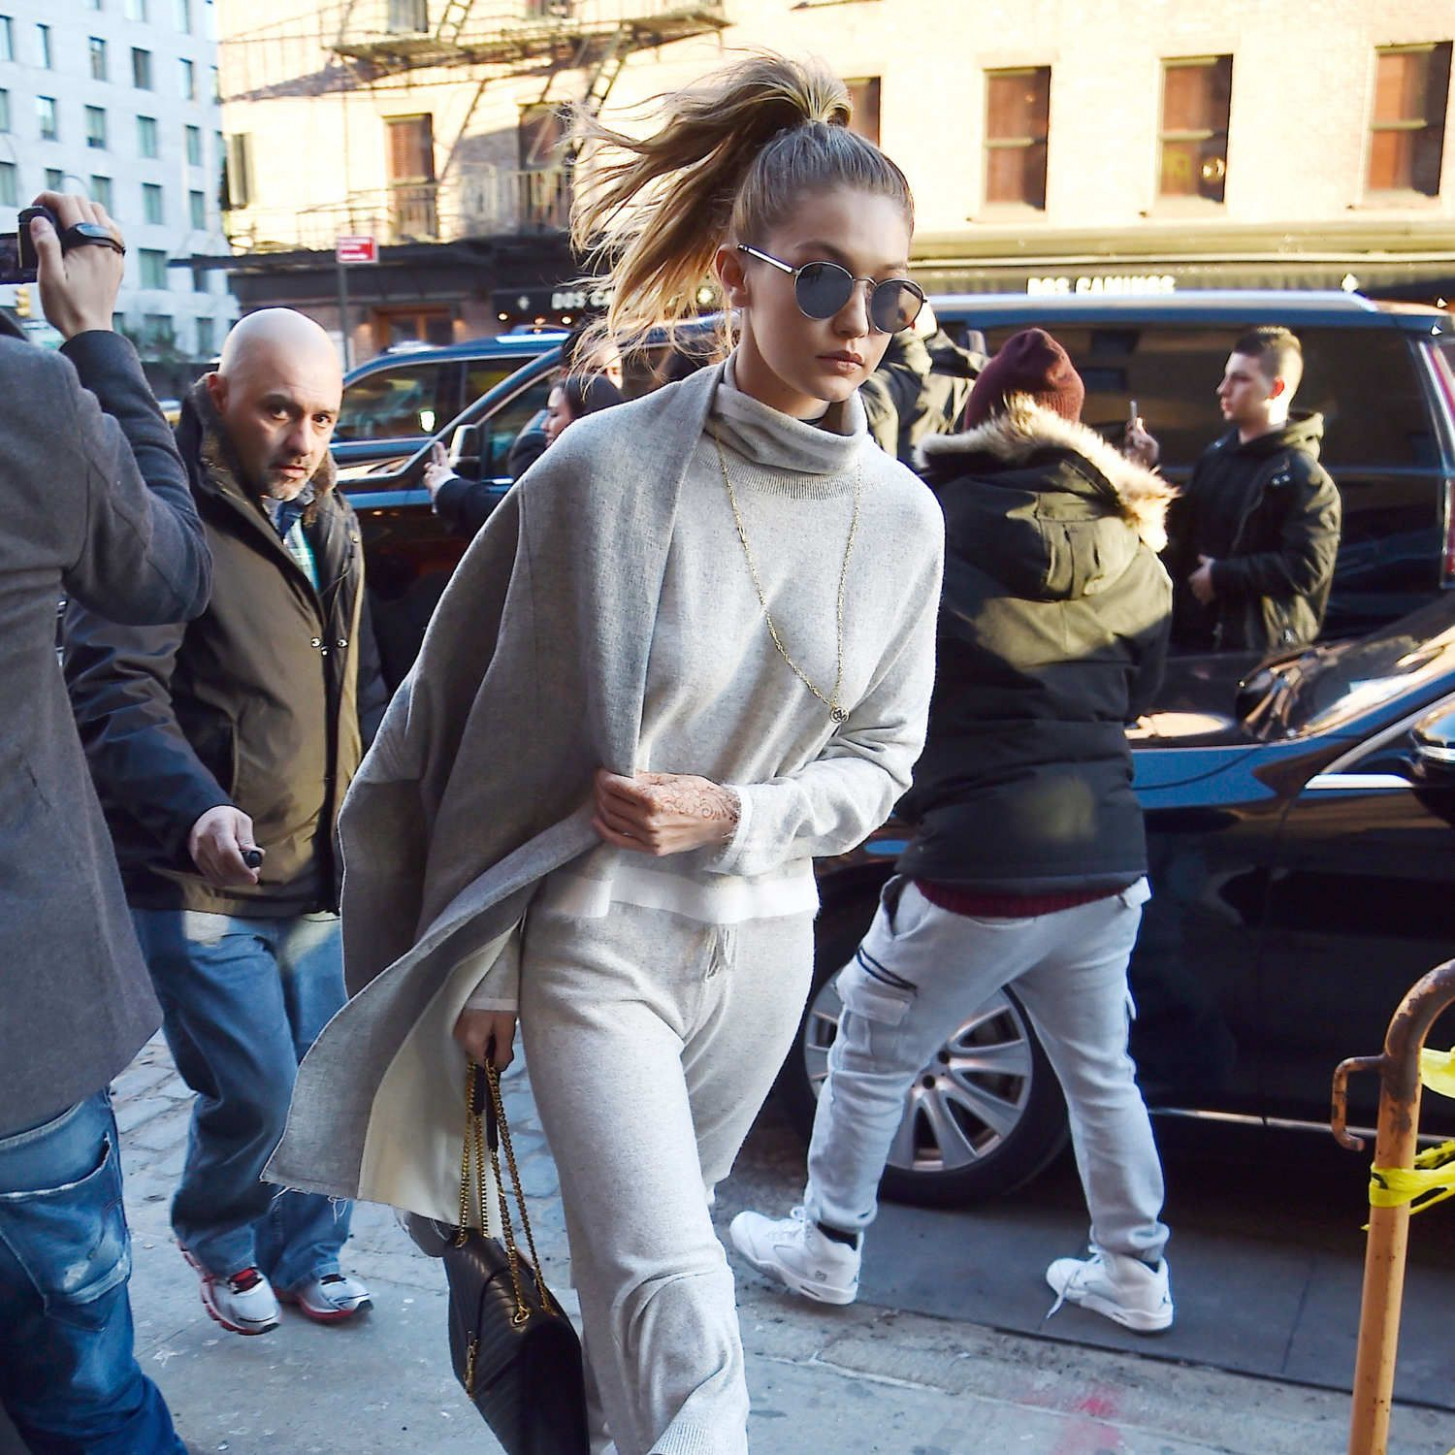 gigi hadid paired knee high boots with sweatpants modestil coole mode für junge frauen